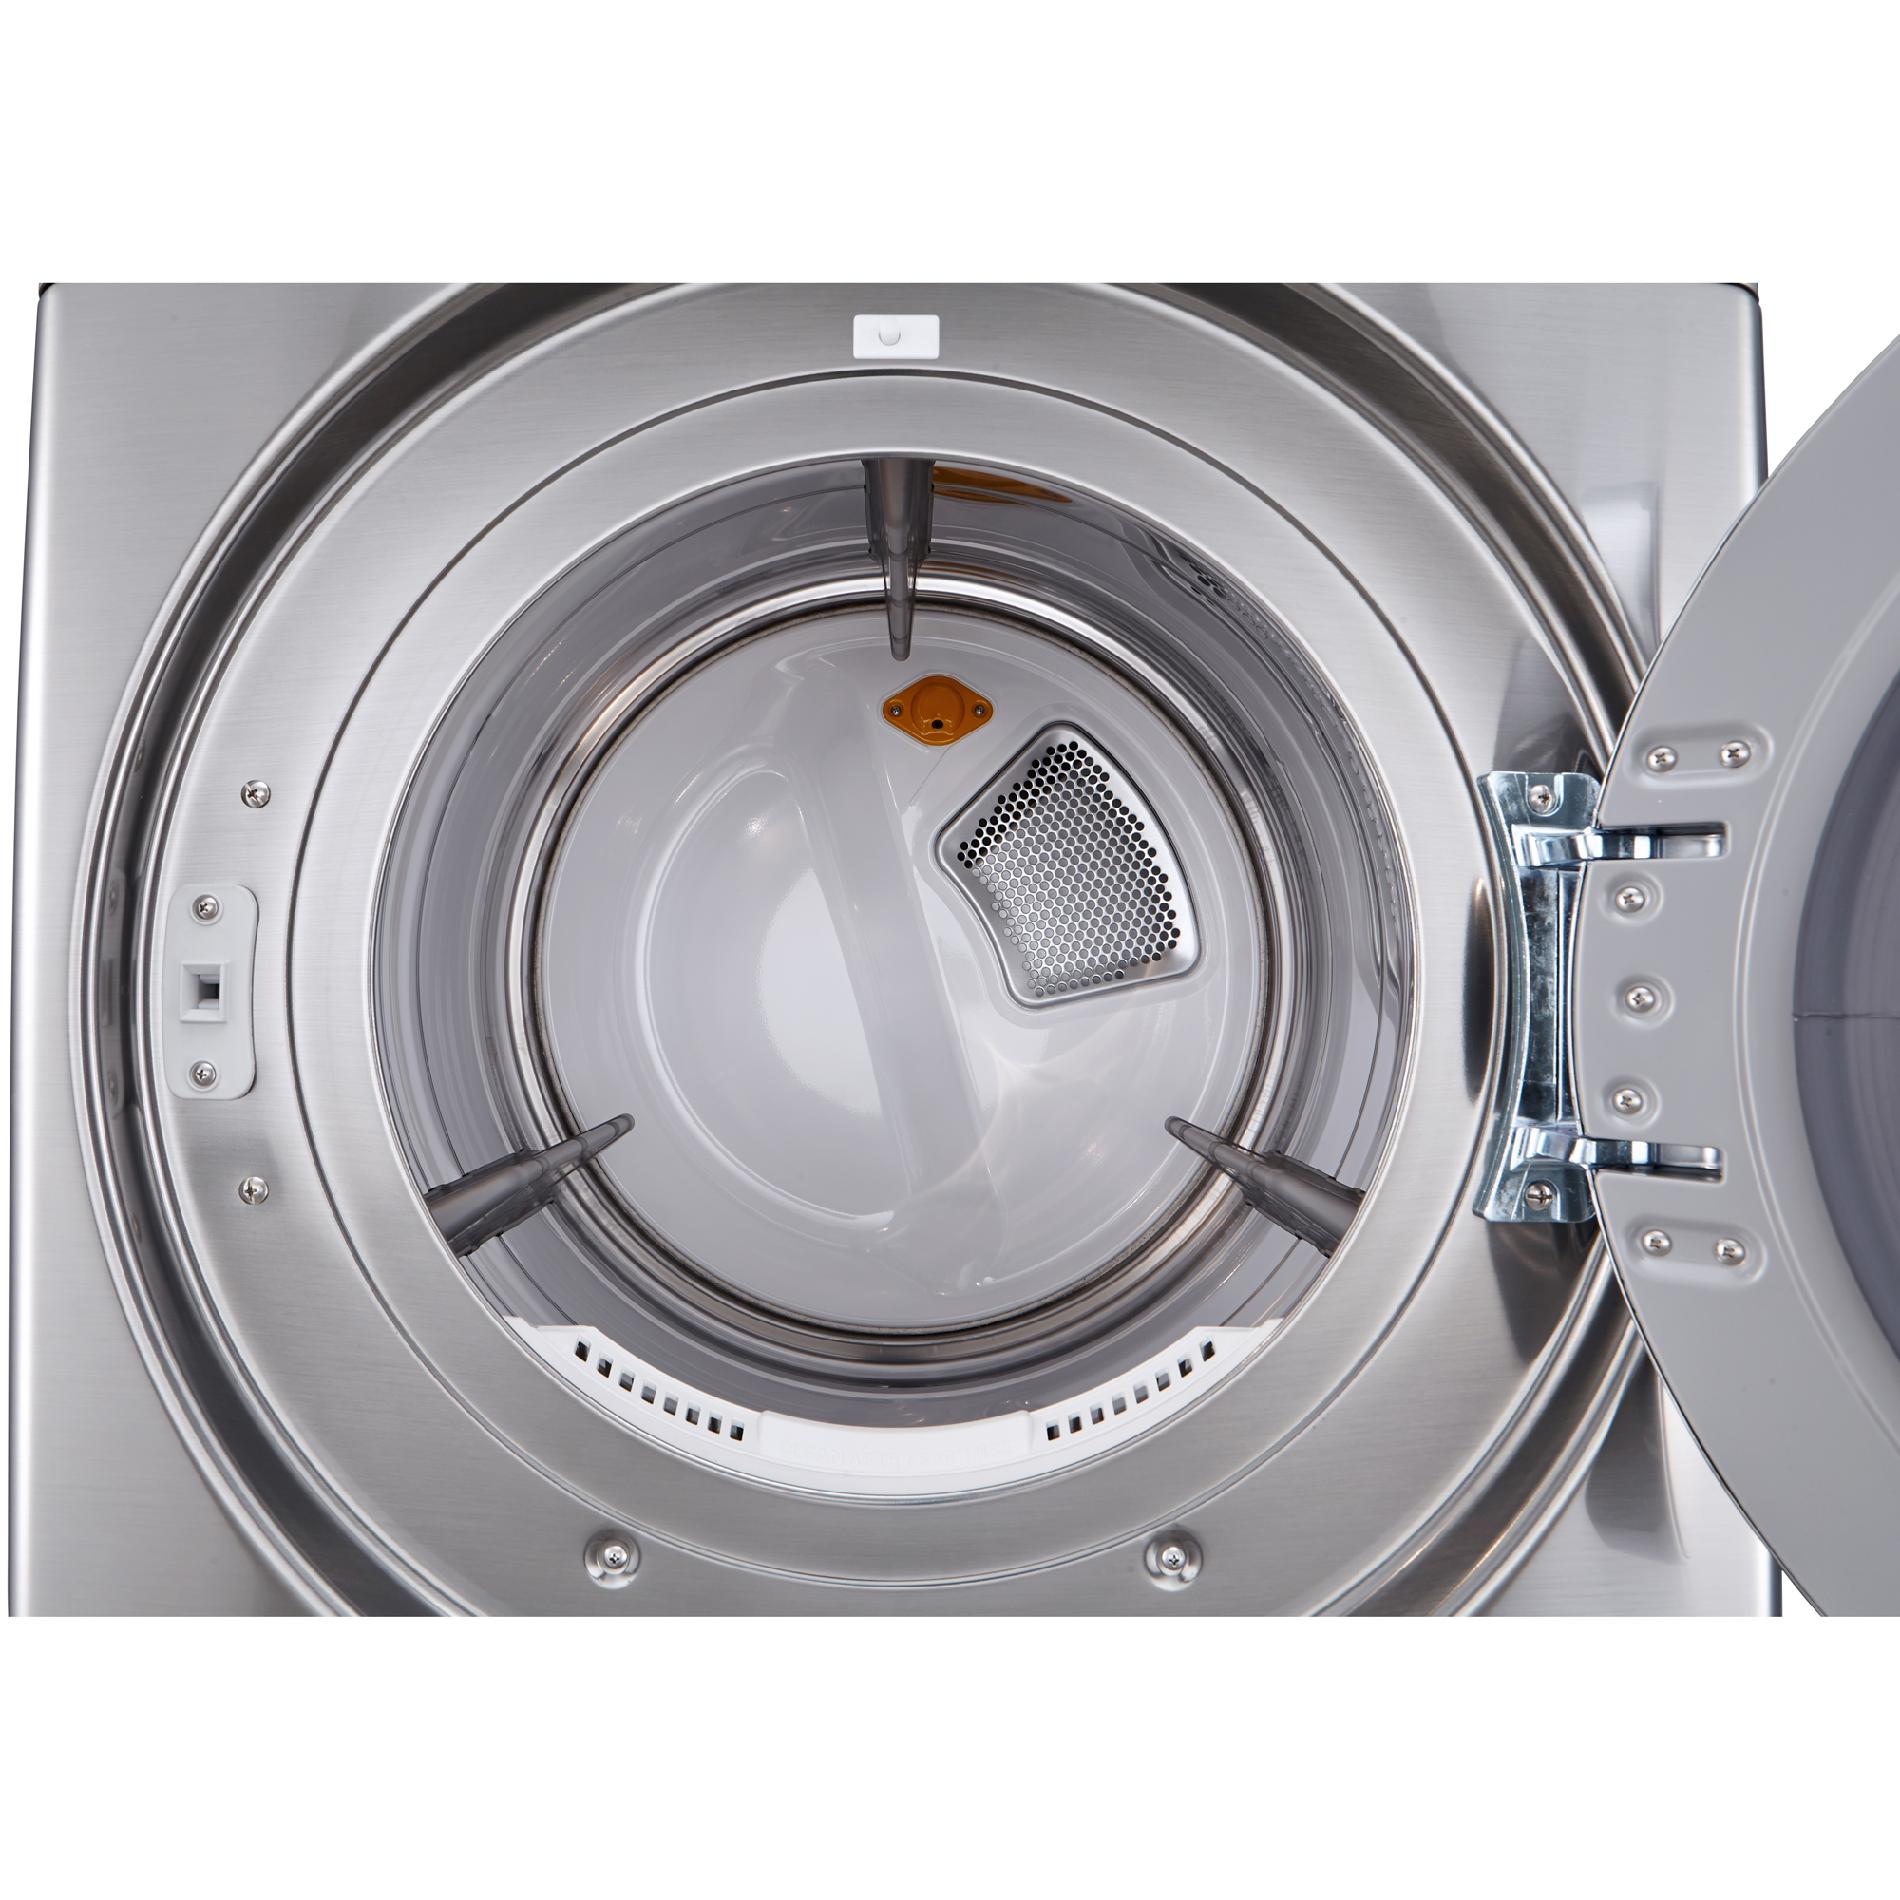 LG DLGX3571V 7.4 cu.ft. Ultra Large Capacity Gas SteamDryer™